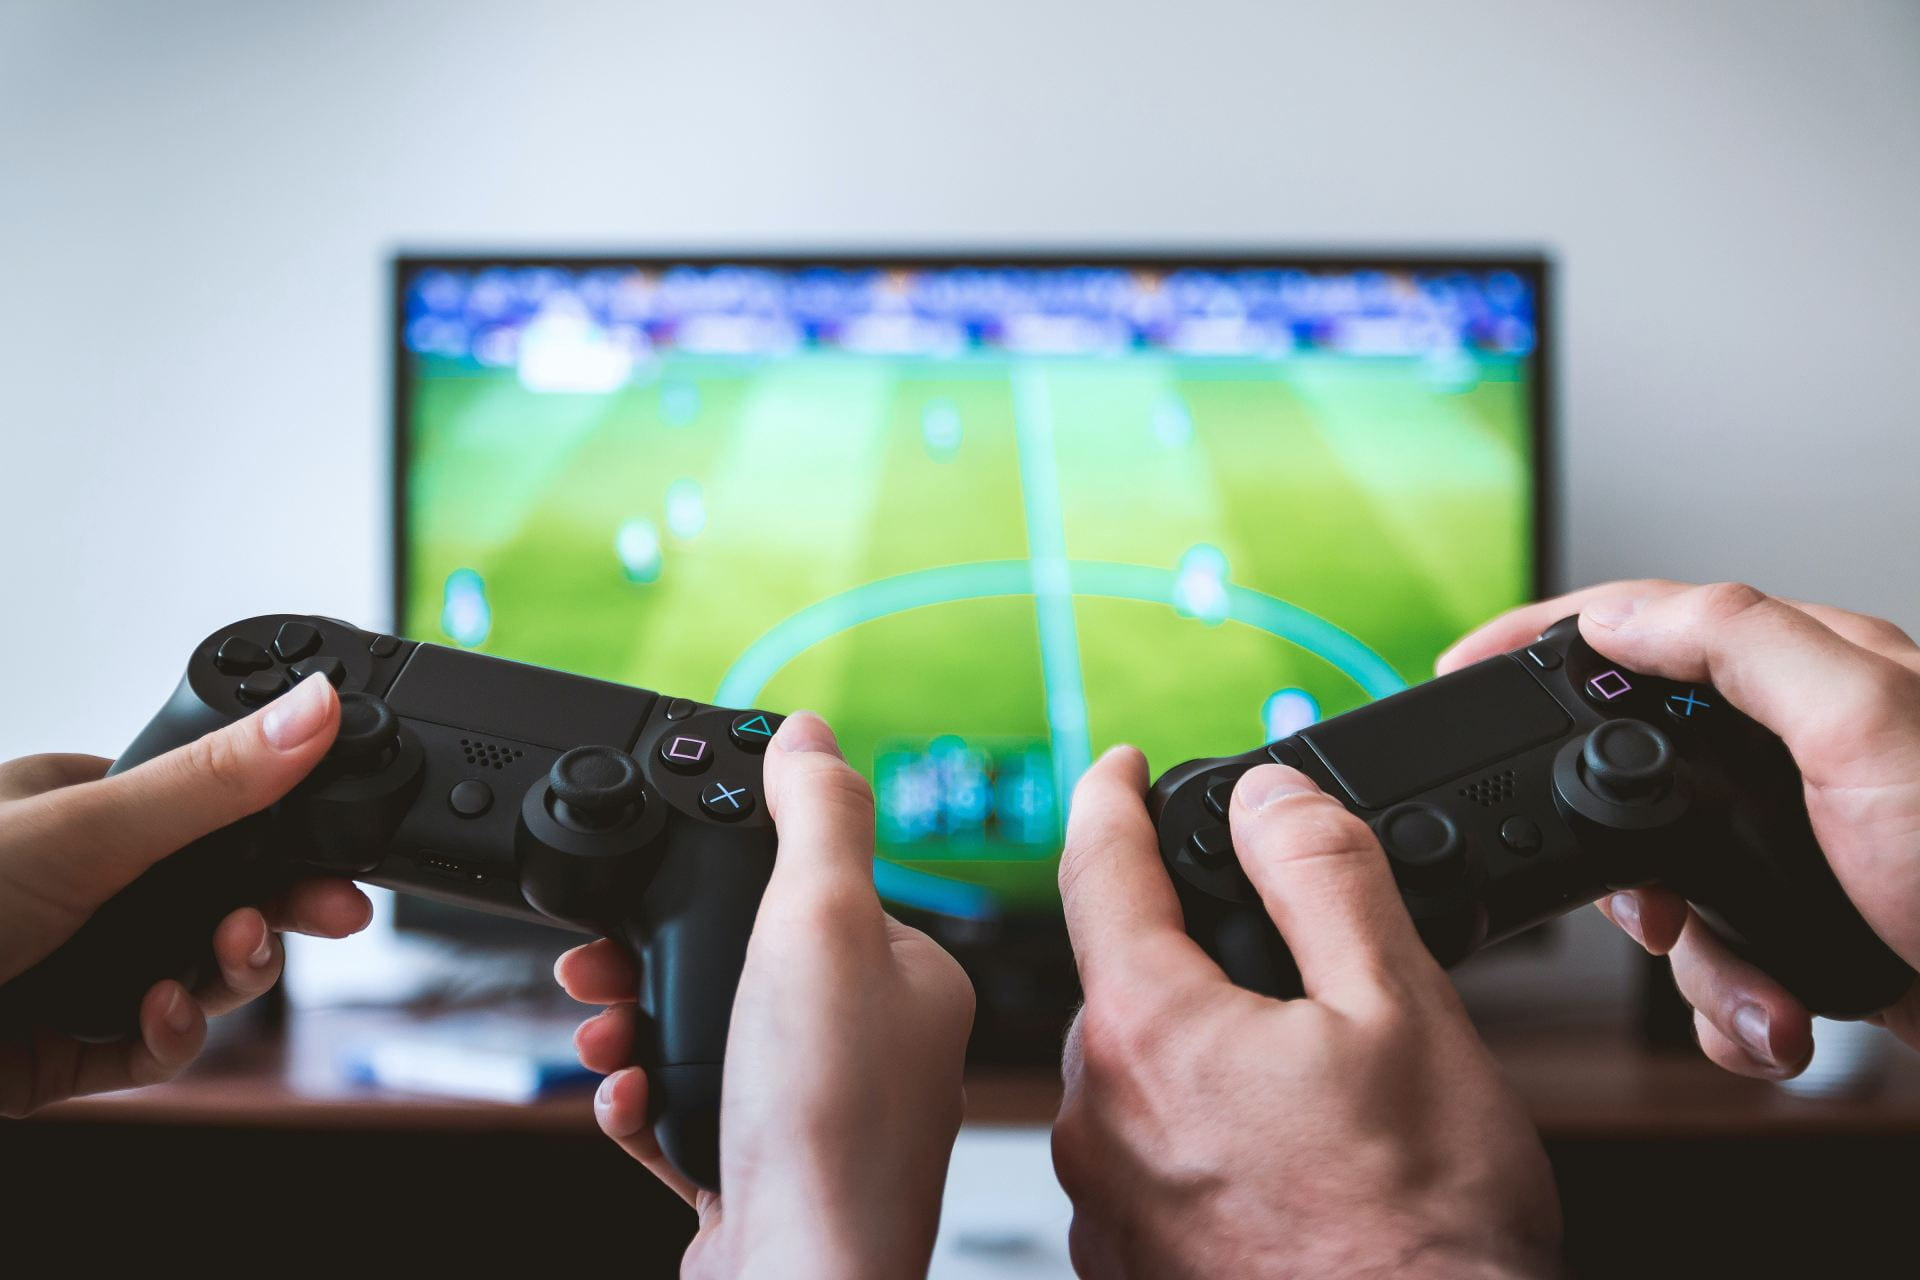 Two pairs of hands holding Playstation remotes. In the background there is a TV out-of-focus with a football game displayed.